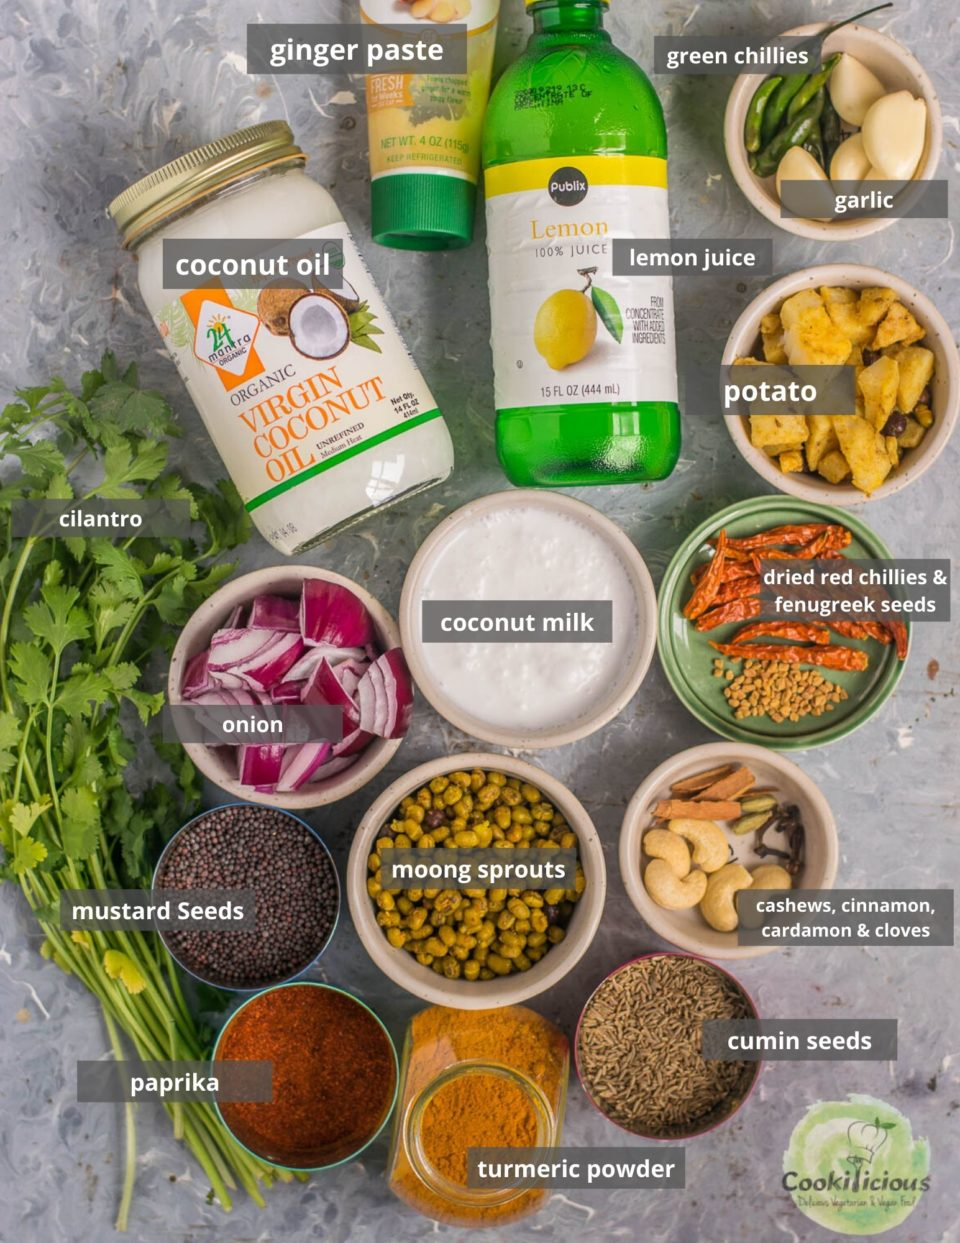 all the ingredients needed to make this Indian vegetarian curry called Moong Sprouts Coconut Vegan Curry displayed on a tray